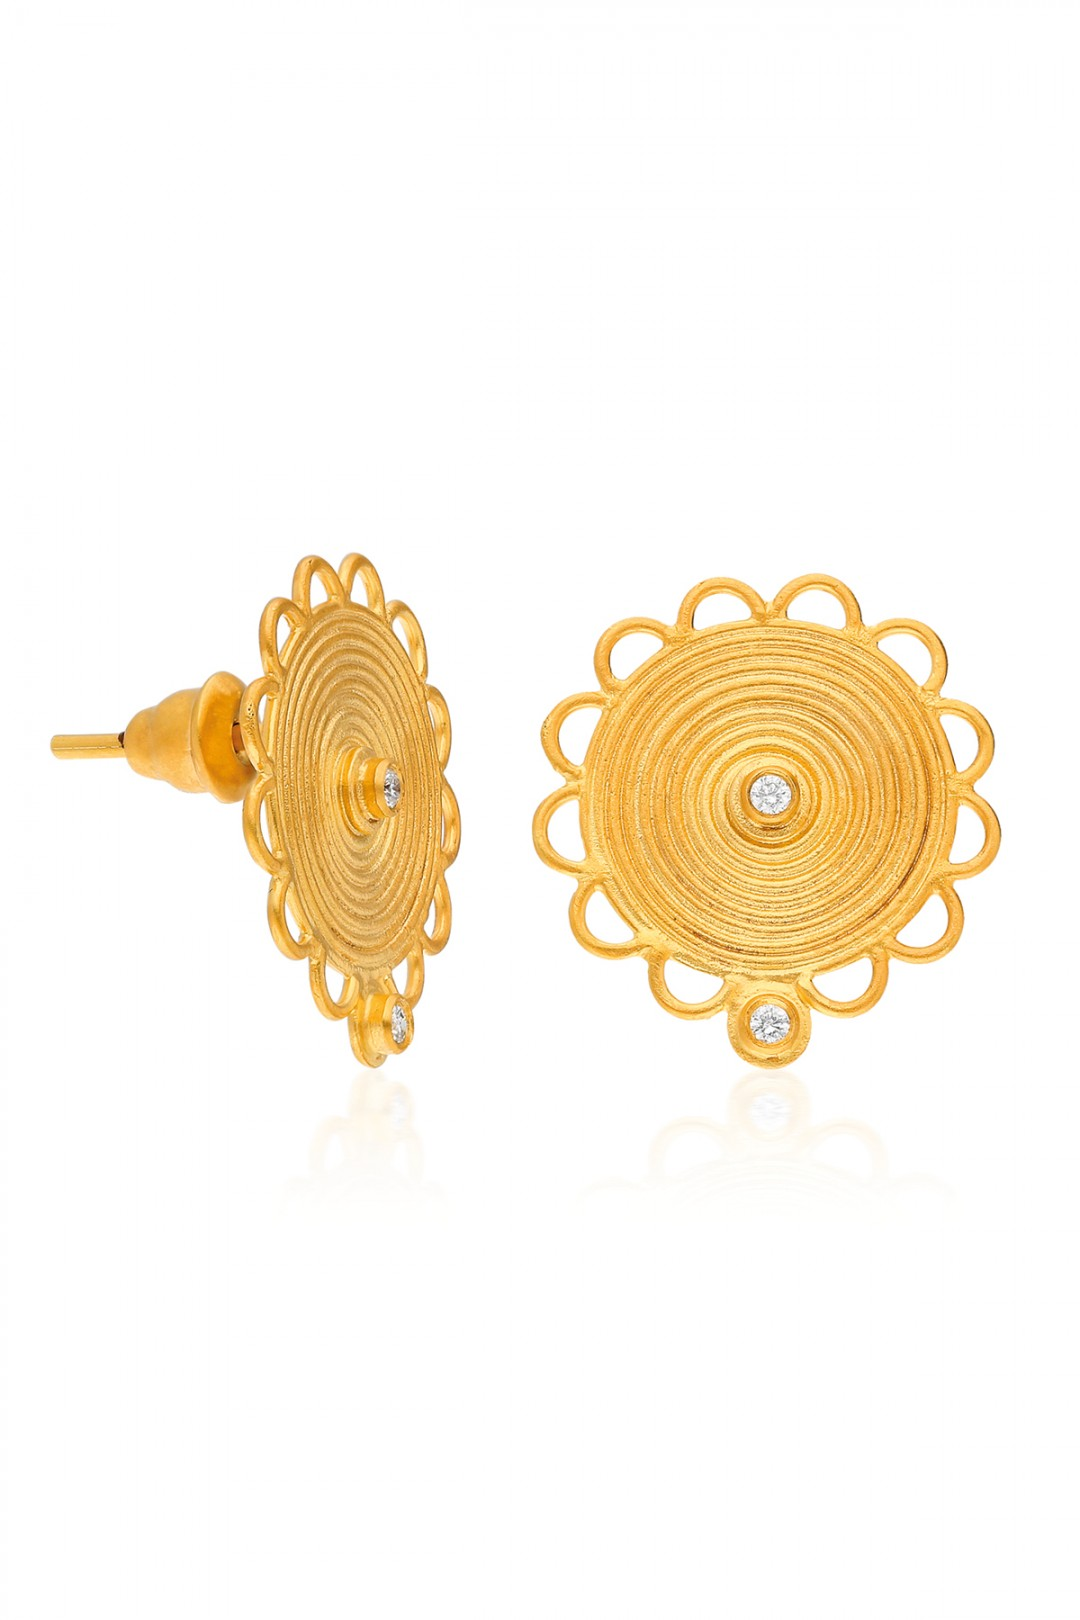 ANCIENT SPIRAL SUN AND DIAMOND EARRING